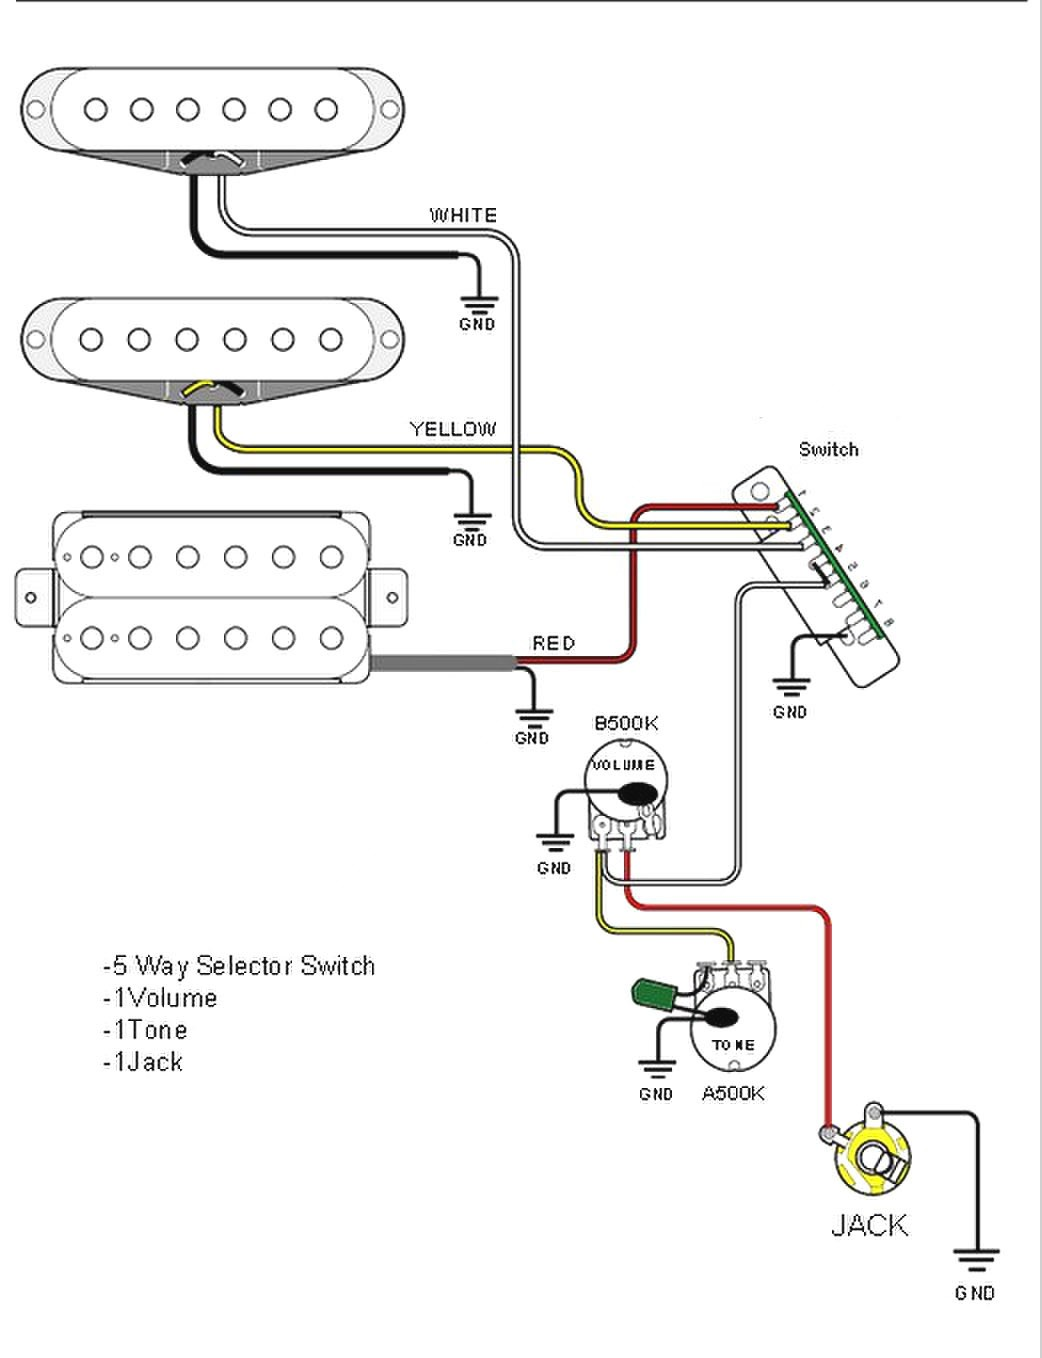 Fender Scn Pickups Wiring Diagram Will Be A Thing Strat Pickup Samarium Cobalt S1 Transmission Guitar Diagrams